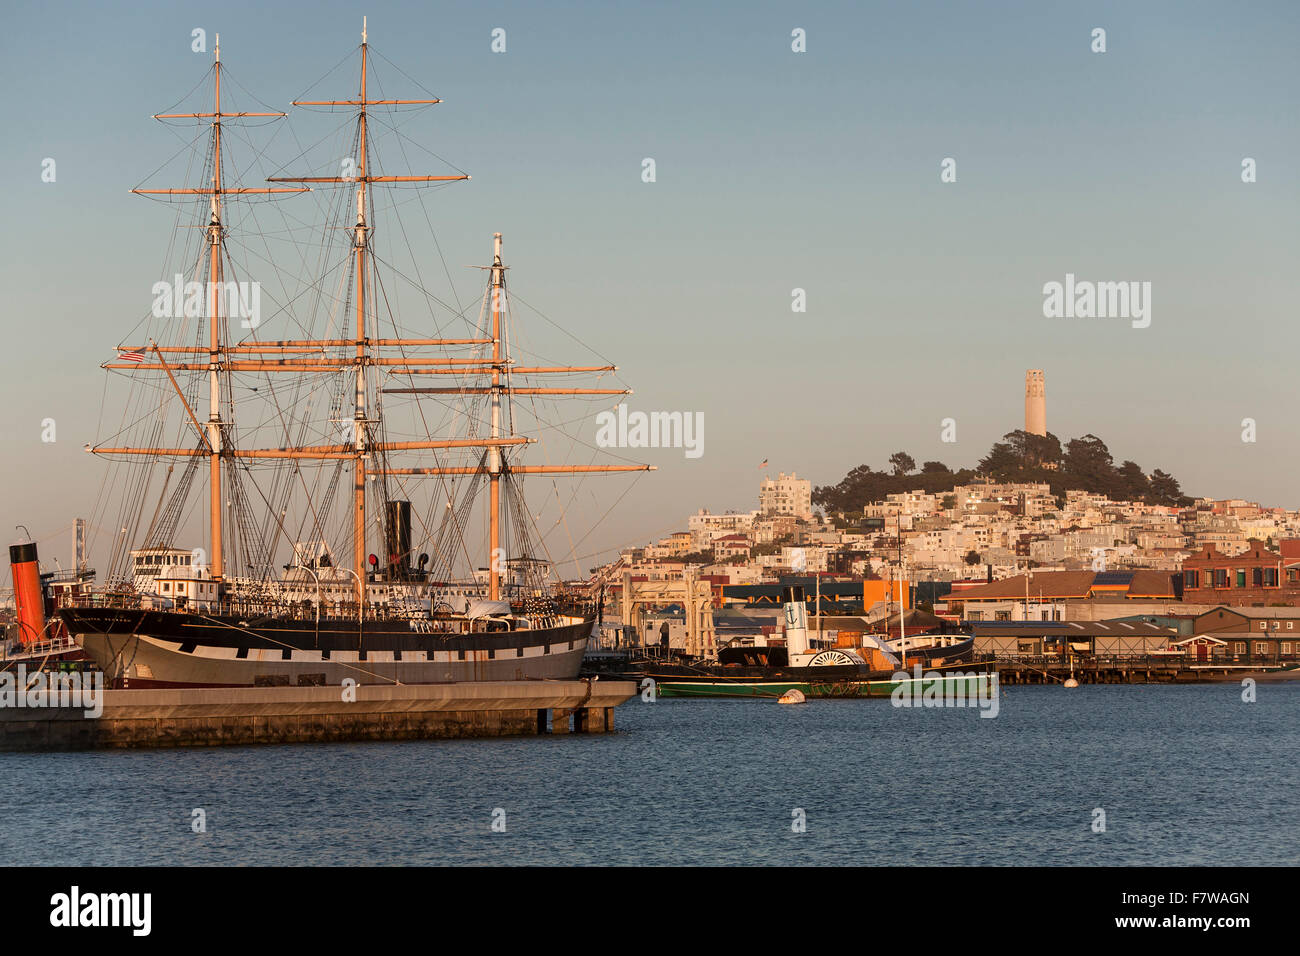 United States, California , San Francisco, The square rigged sailing ship 'Balcutha', Coit Tower on top - Stock Image